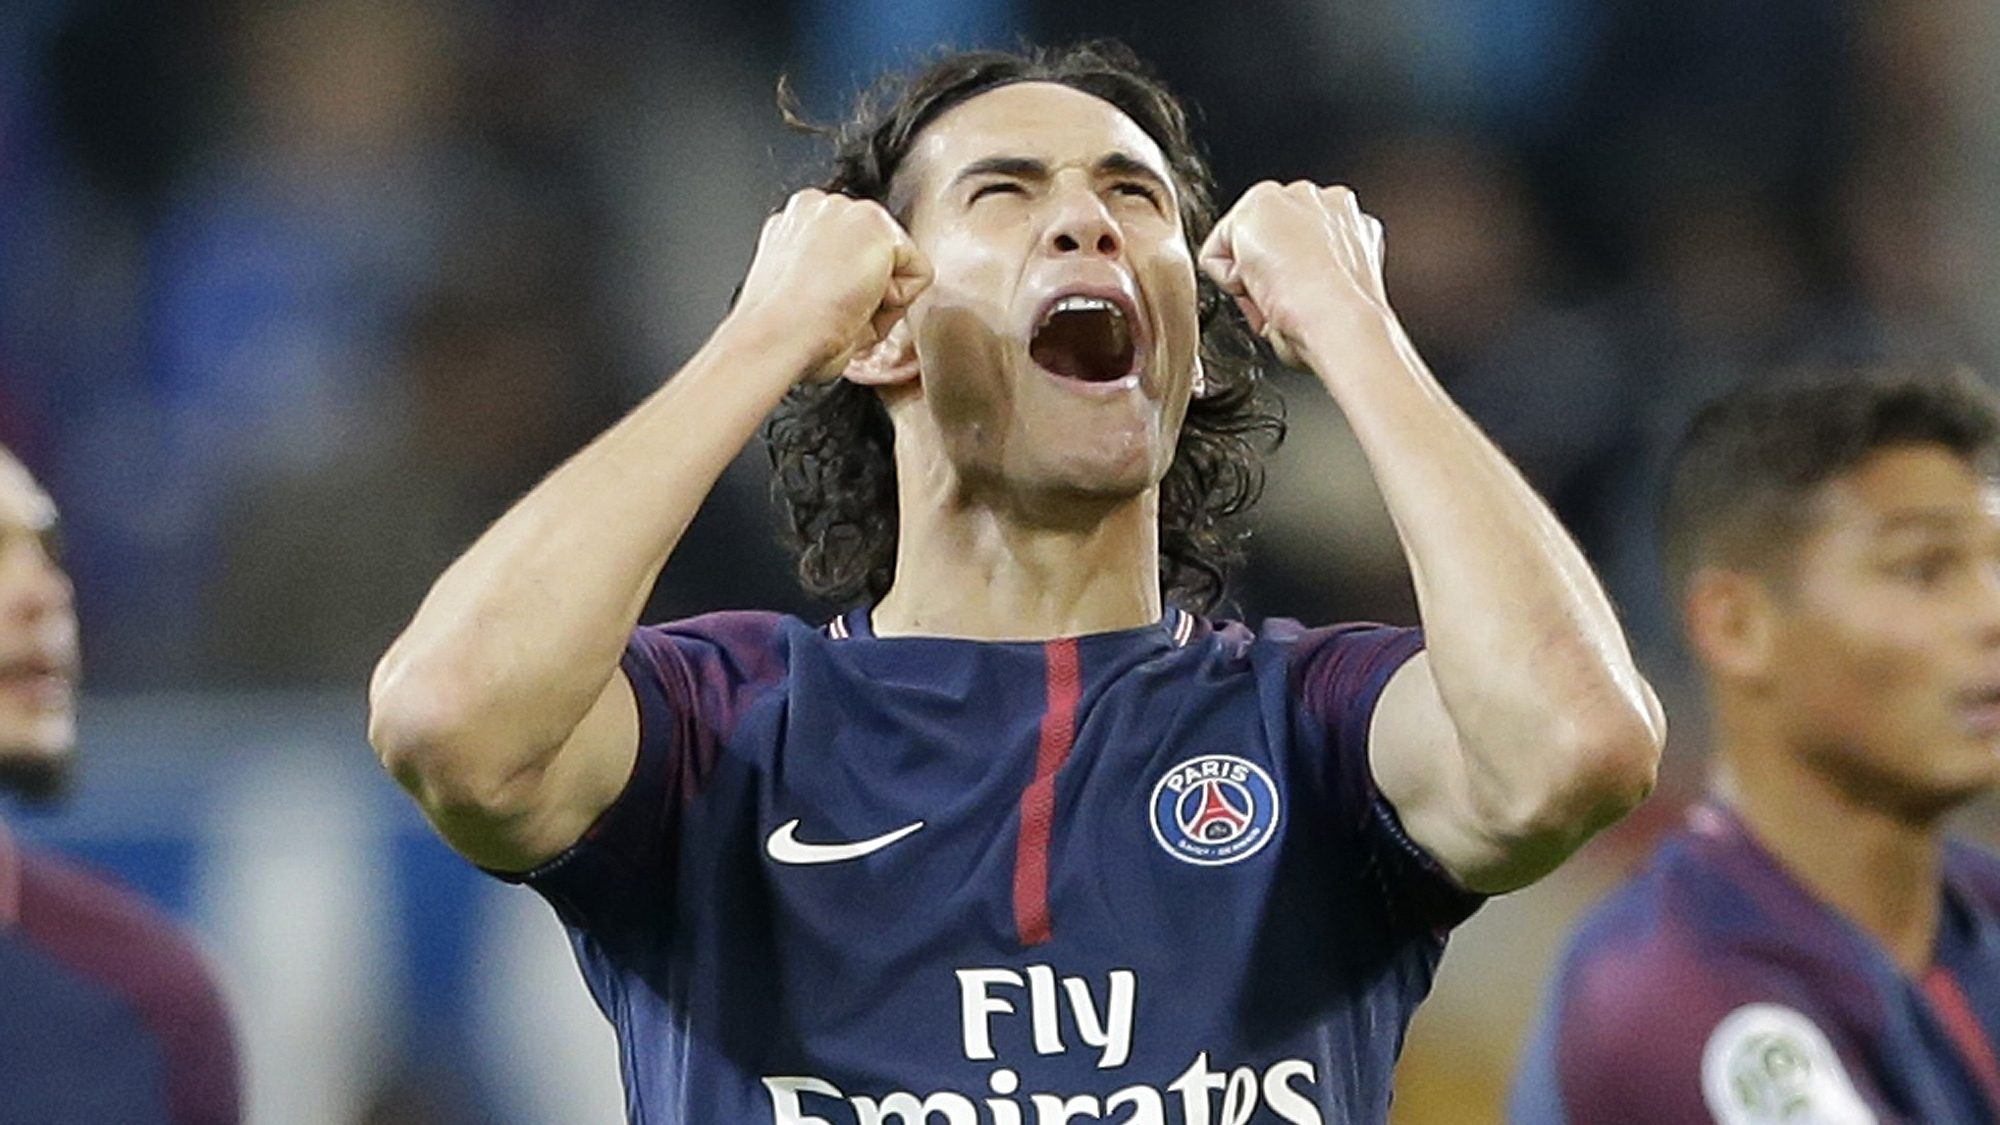 manchester united signs edinson cavani to one year deal with option manchester united signs edinson cavani